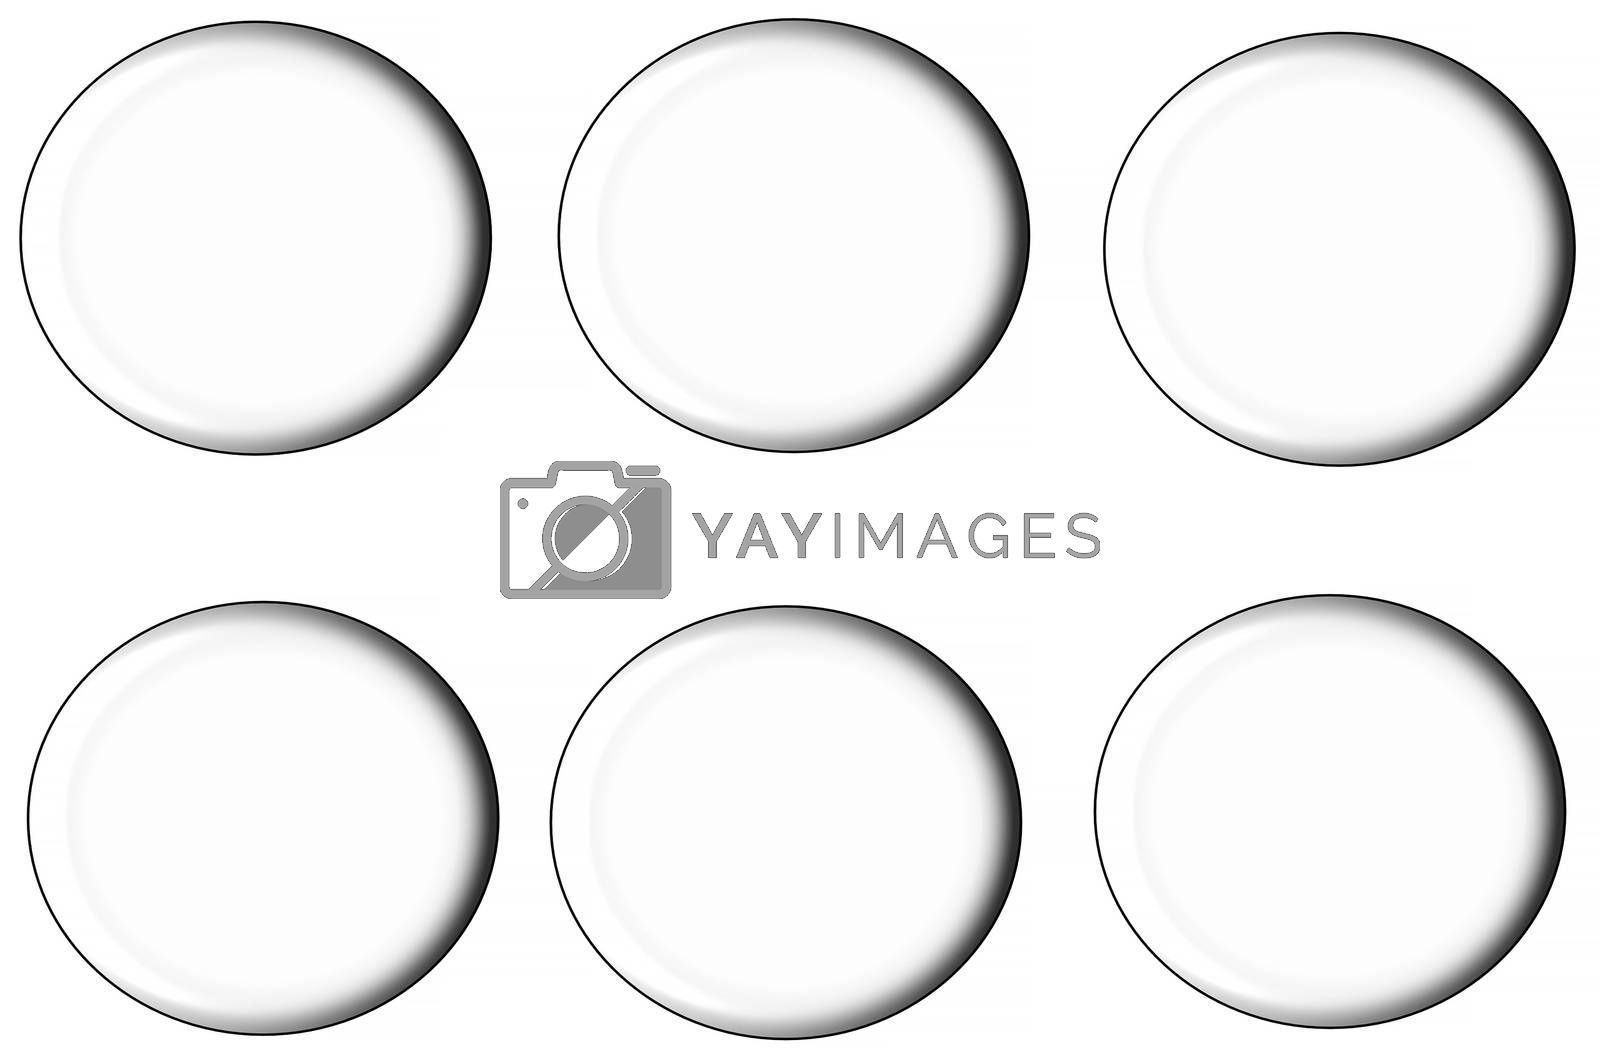 Royalty free image of set of round buttons, by JFsPic